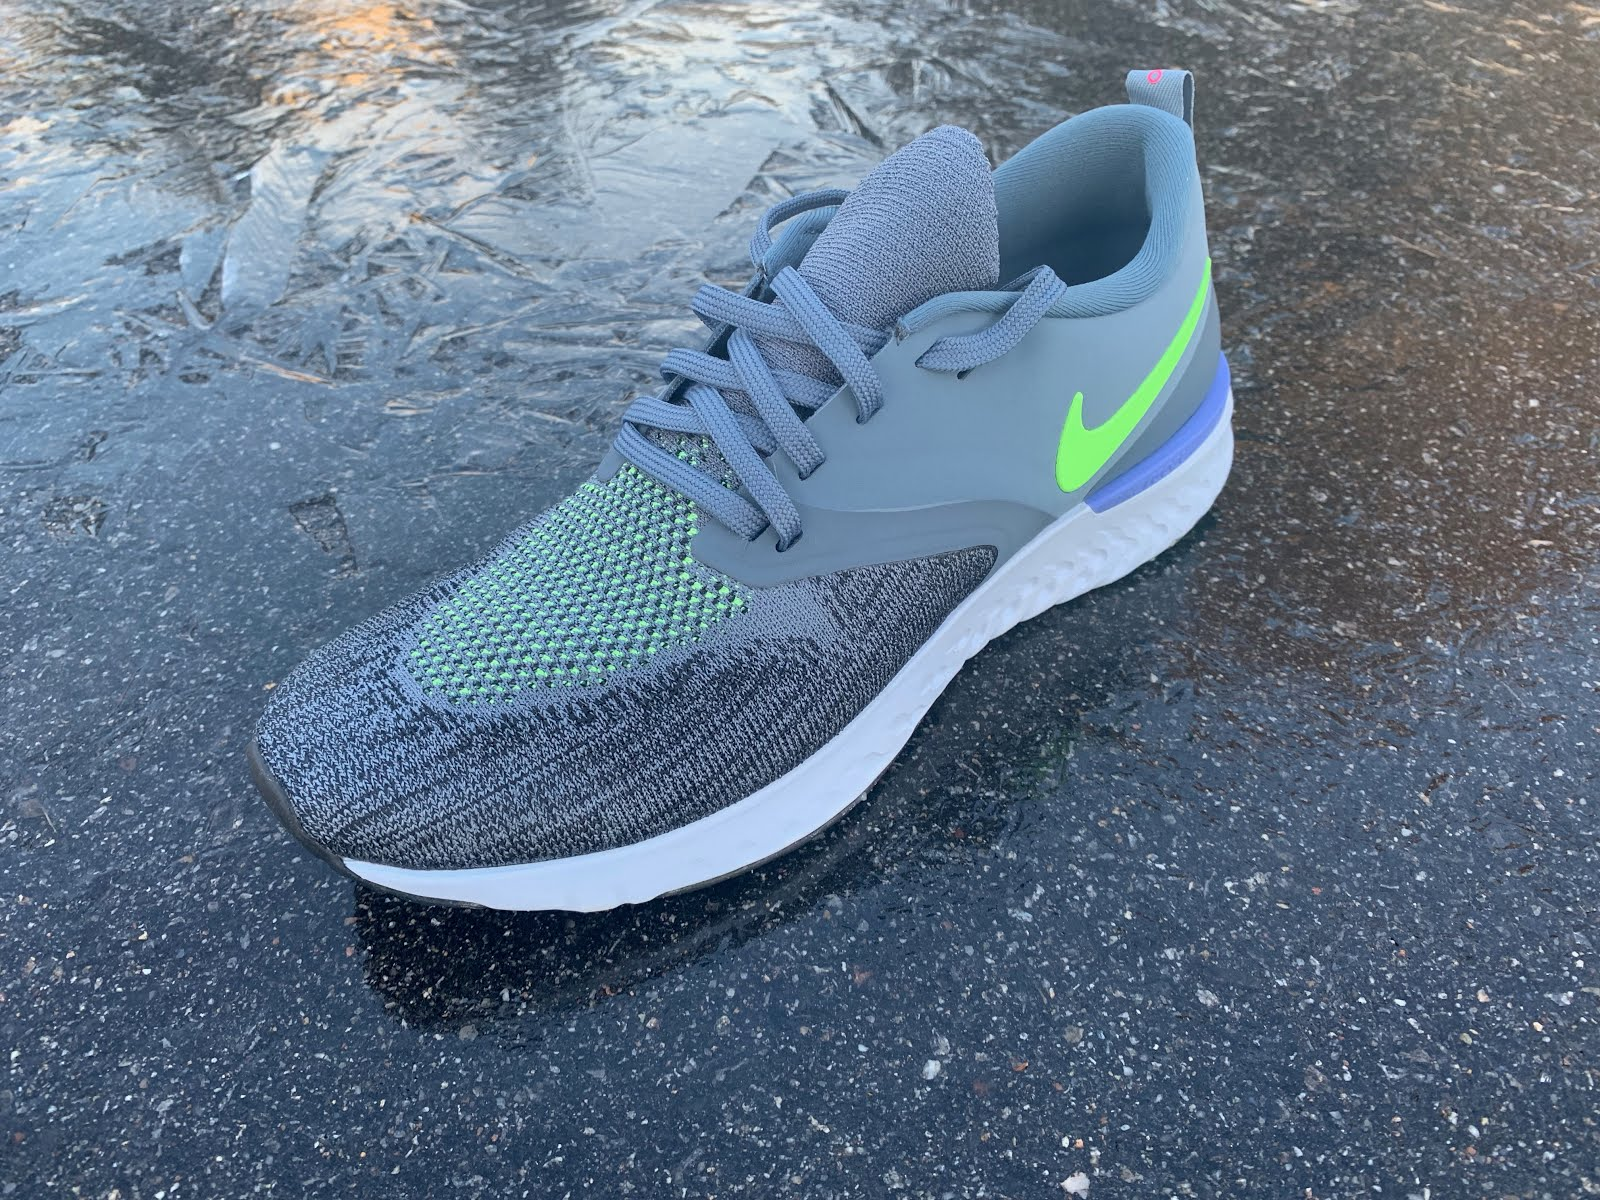 08c722728b1 Road Trail Run  NIke Odyssey React 2 Flyknit Initial Review  It s ...